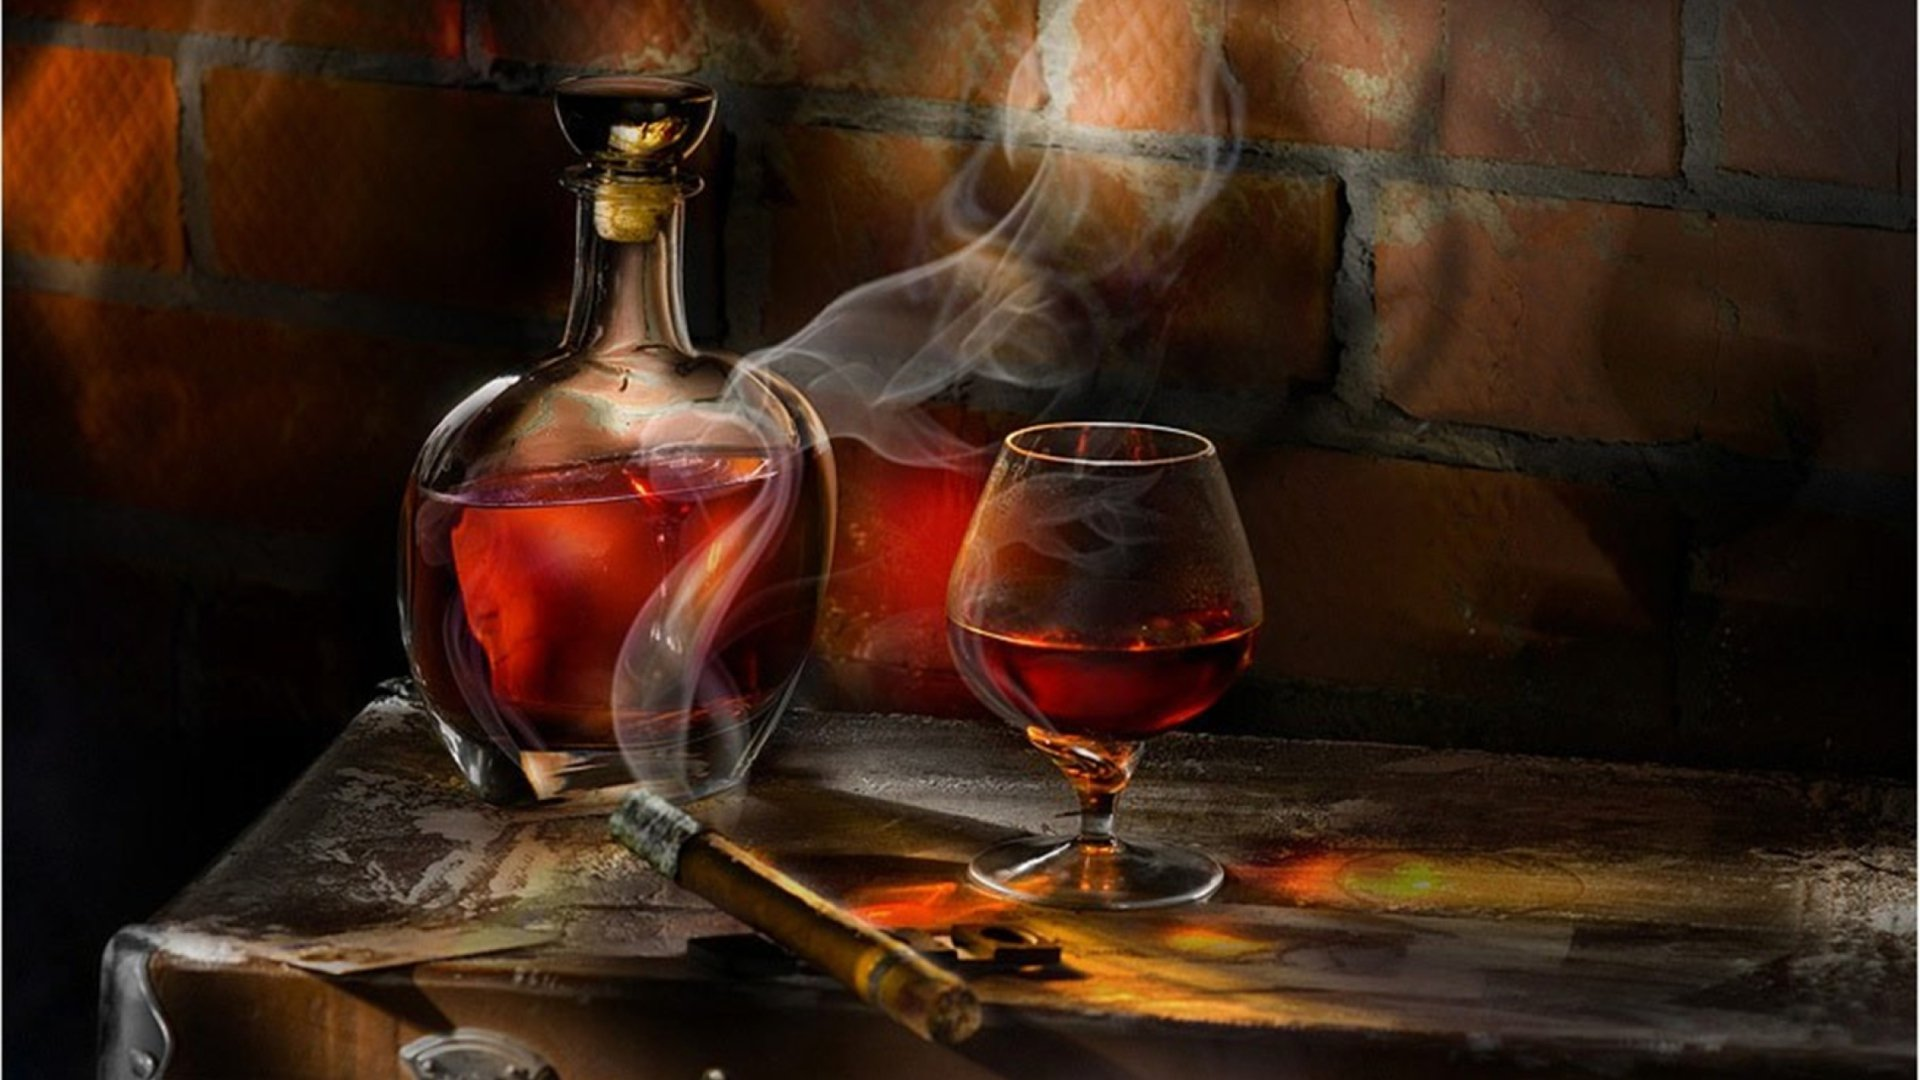 Whisky Glass With Cigar On The Table HD Desktop Wallpaper High